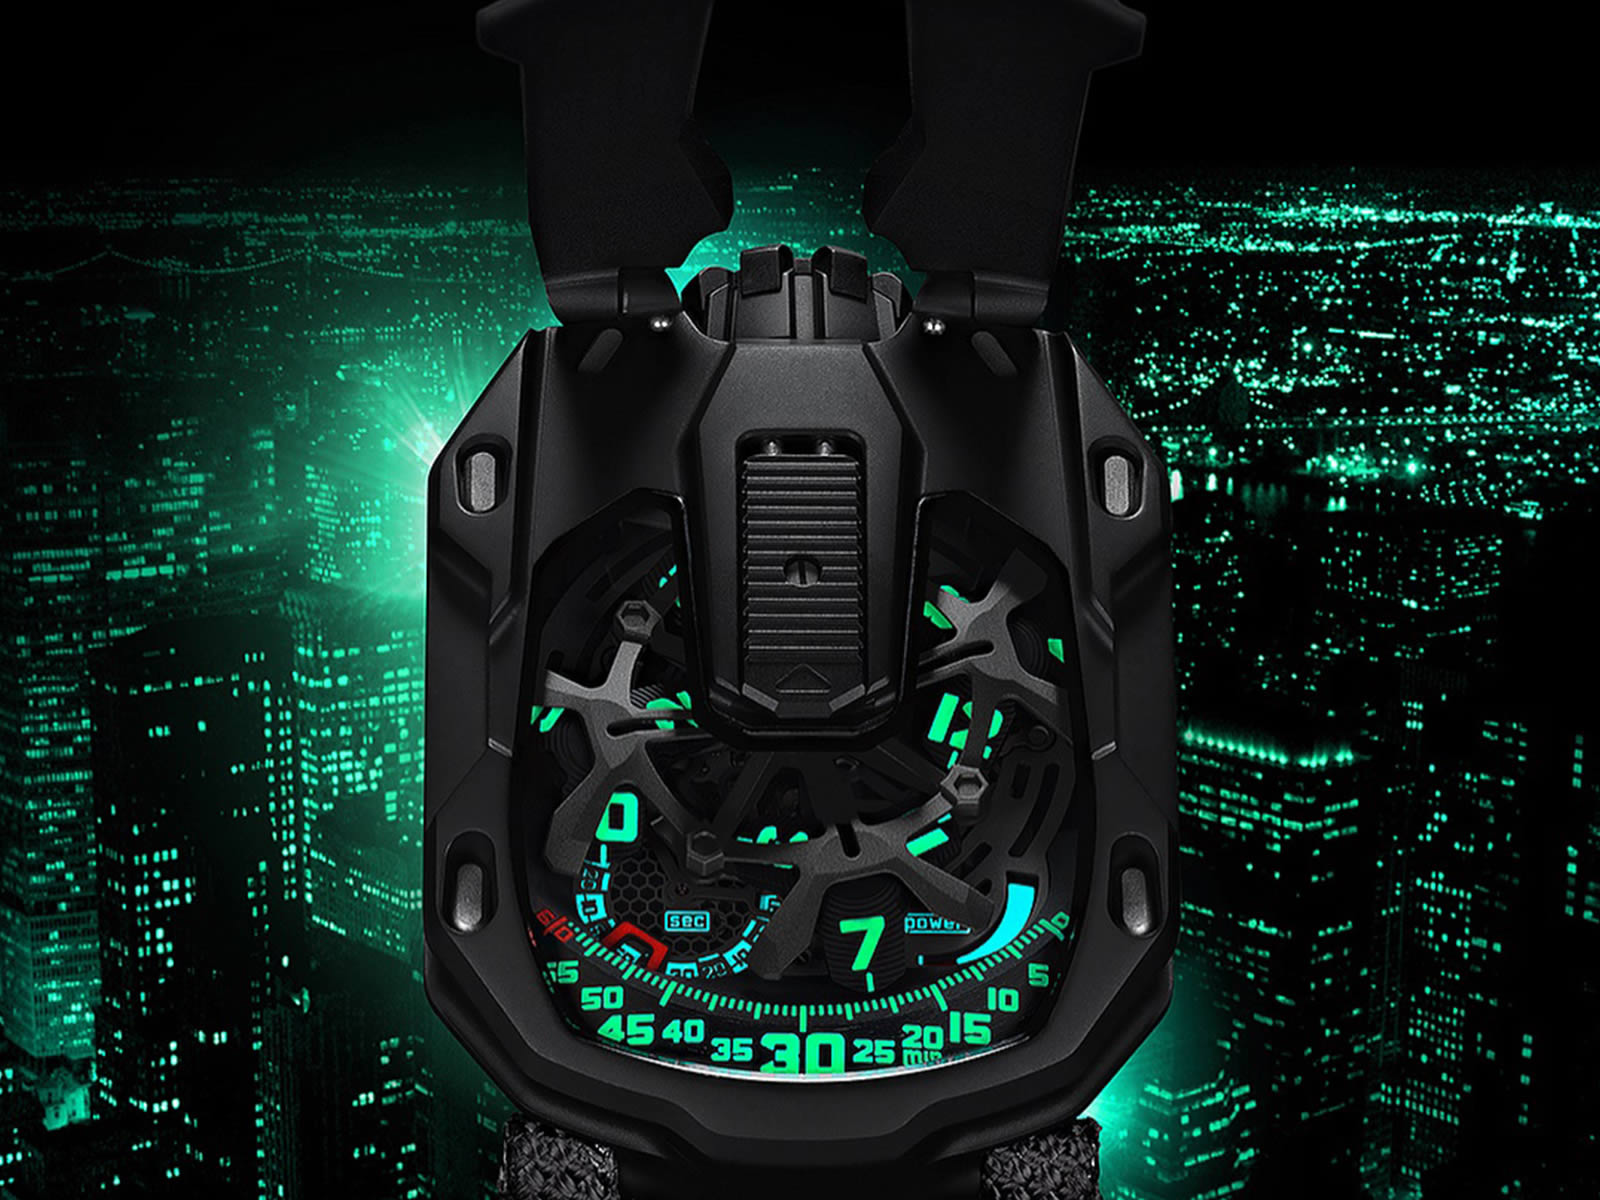 urwerk-ur-105-ct-kryptonite-2-.jpg